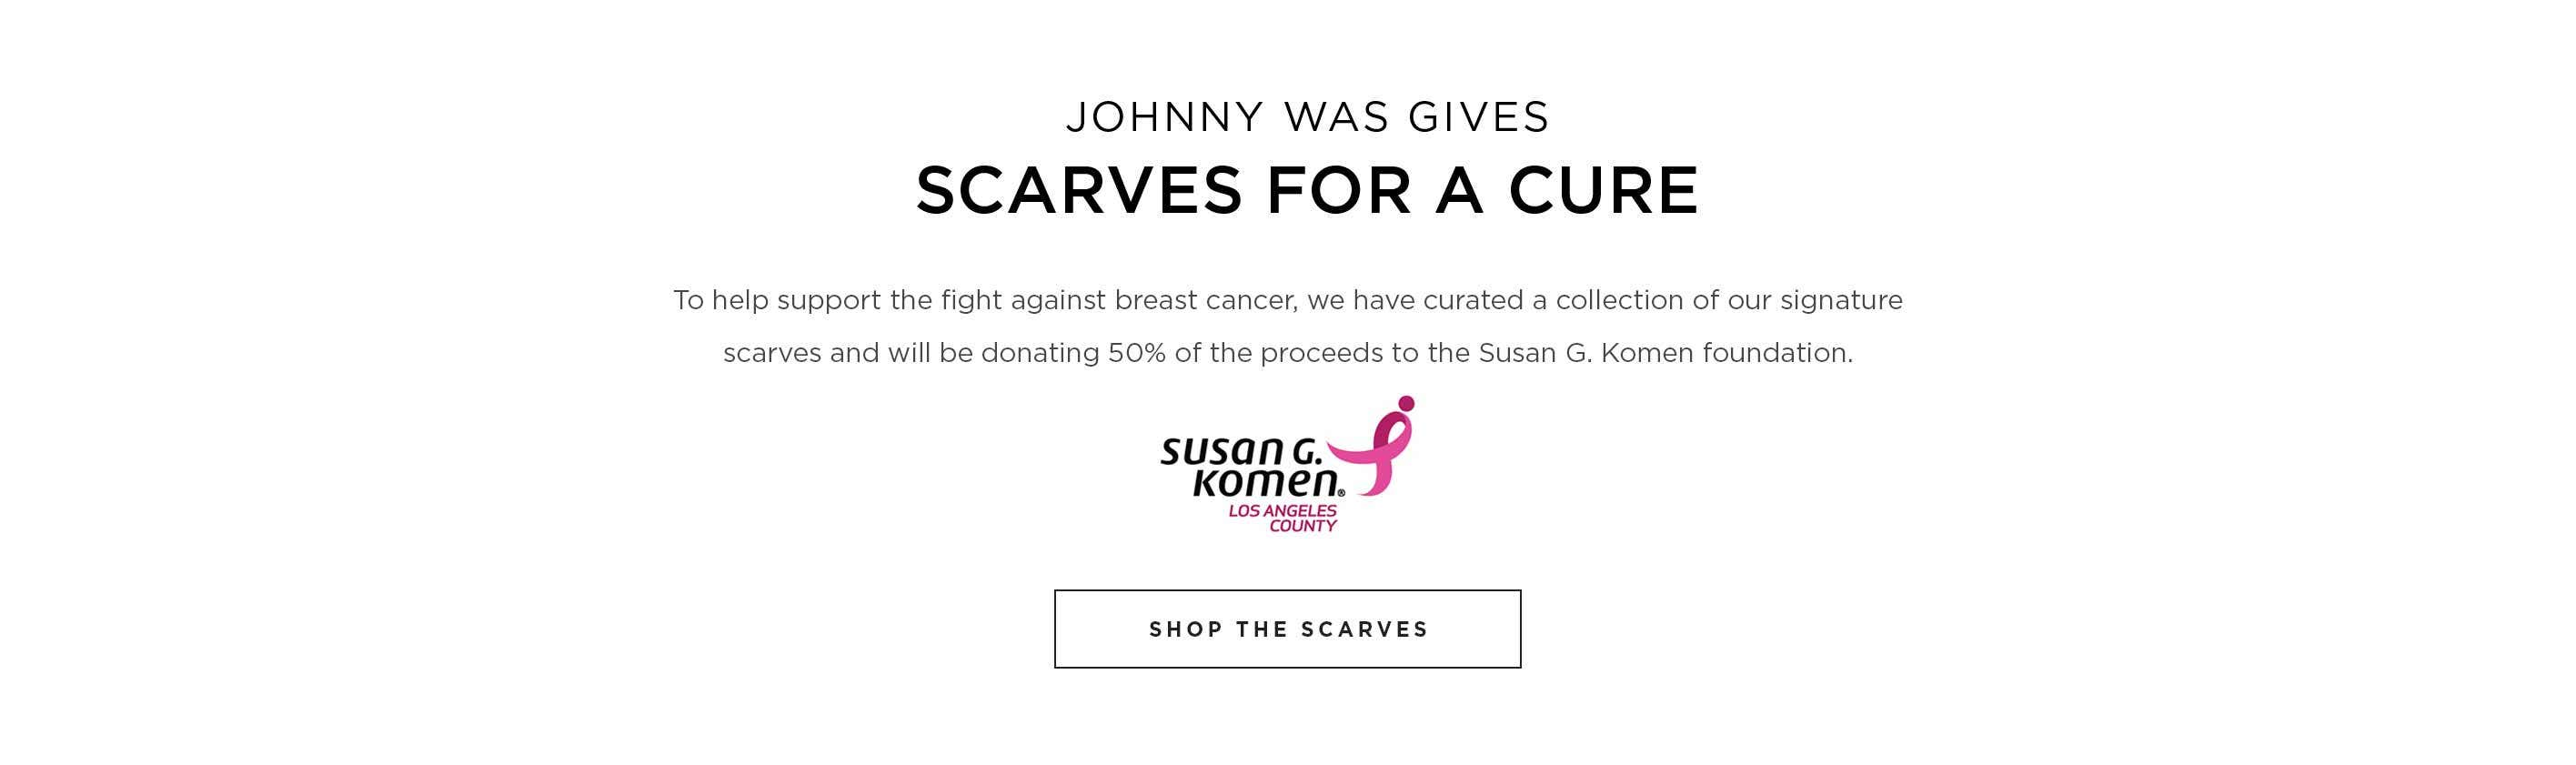 Johnny Was Gives Scarves for a Cure - To help support the fight against breast cancer, we have curated a collection of our signature scarves and will be donating 50% of the proceeds to the Susan G. Komen Foundation. Susan G. Komen Foundation Los Angeles County logo. Shop the Scarves.